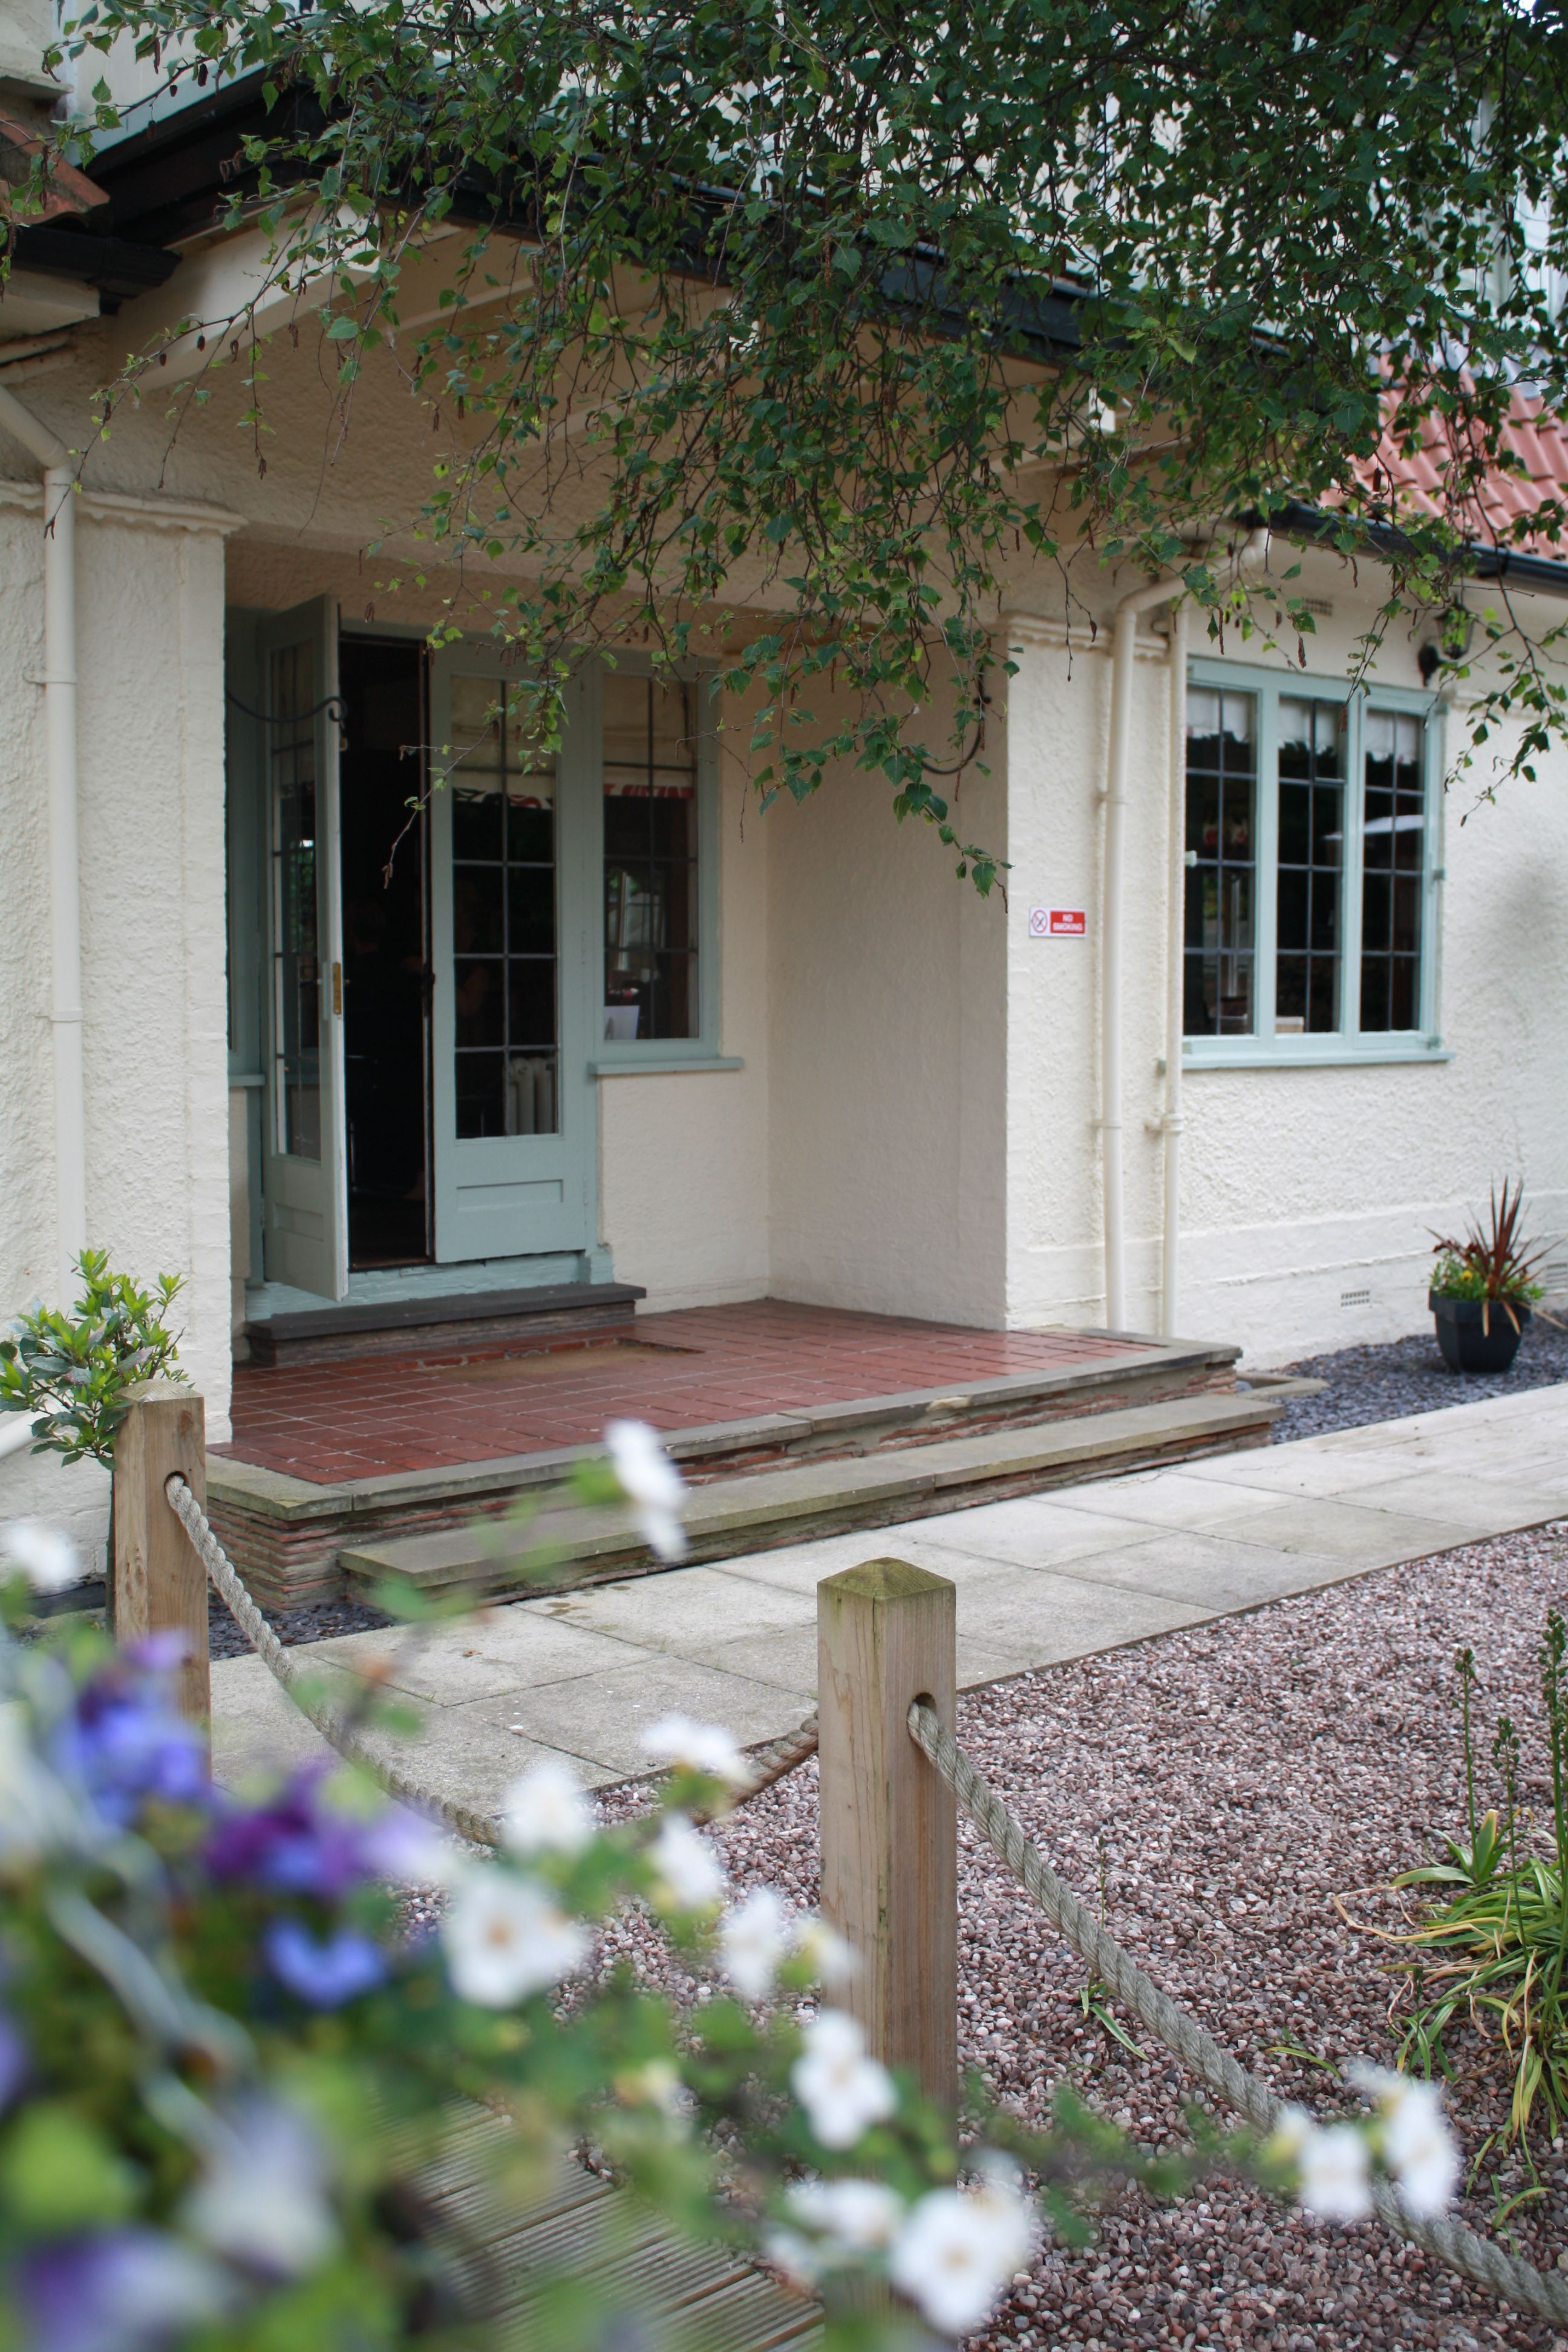 French Doors Lead From The Hair Salon To The Gardens With Plenty Of